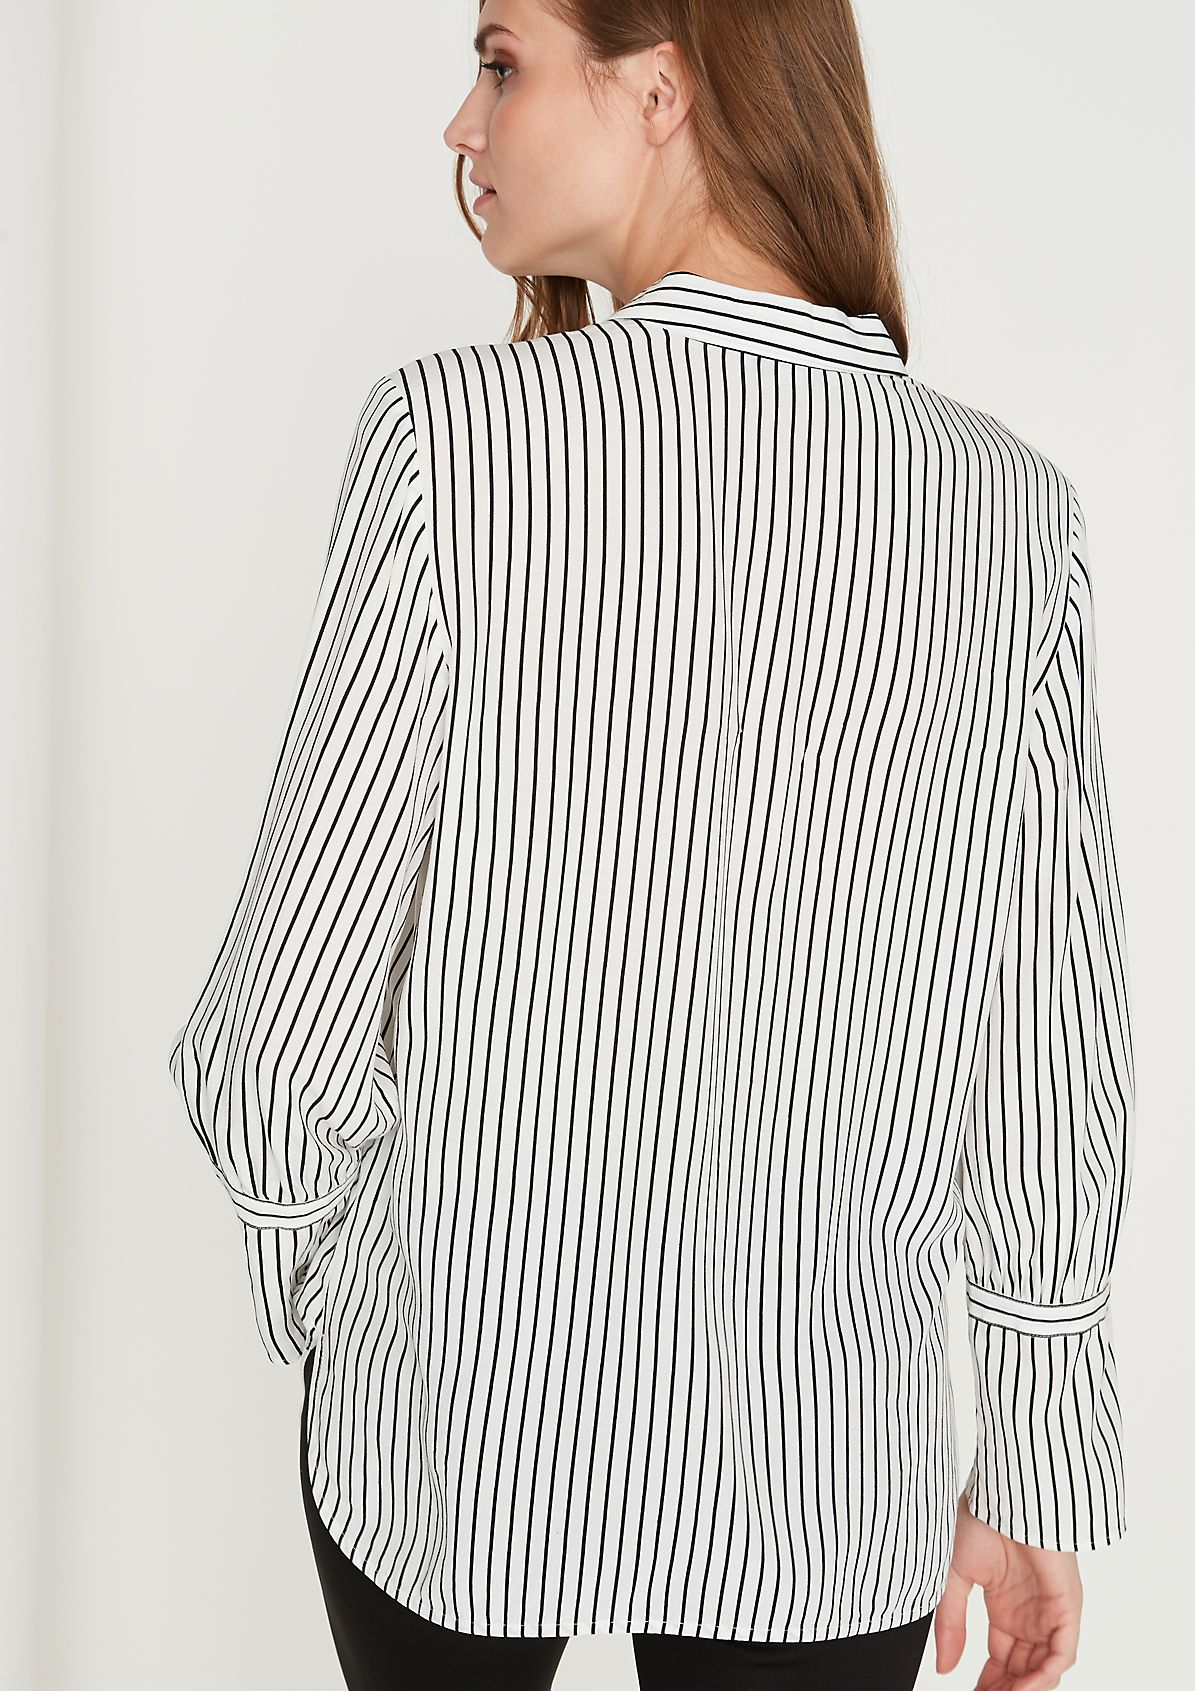 Crêpe blouse with a stripe pattern from comma